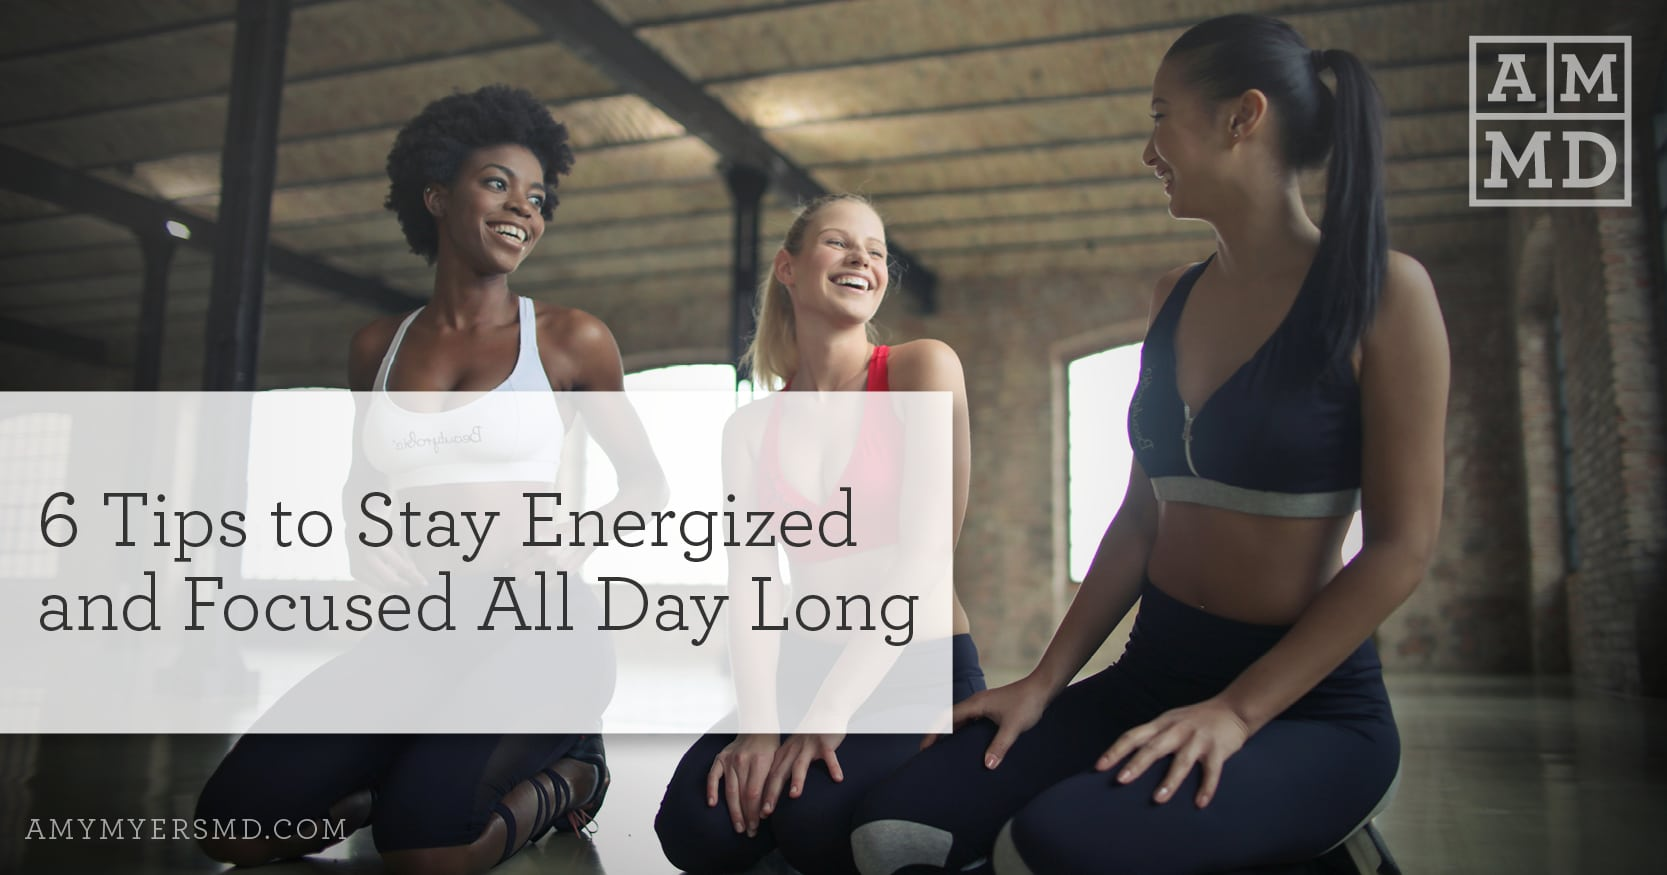 Stay Energized and Focused All Day Long - Women at the Gym - Featured Image - Amy Myers MD